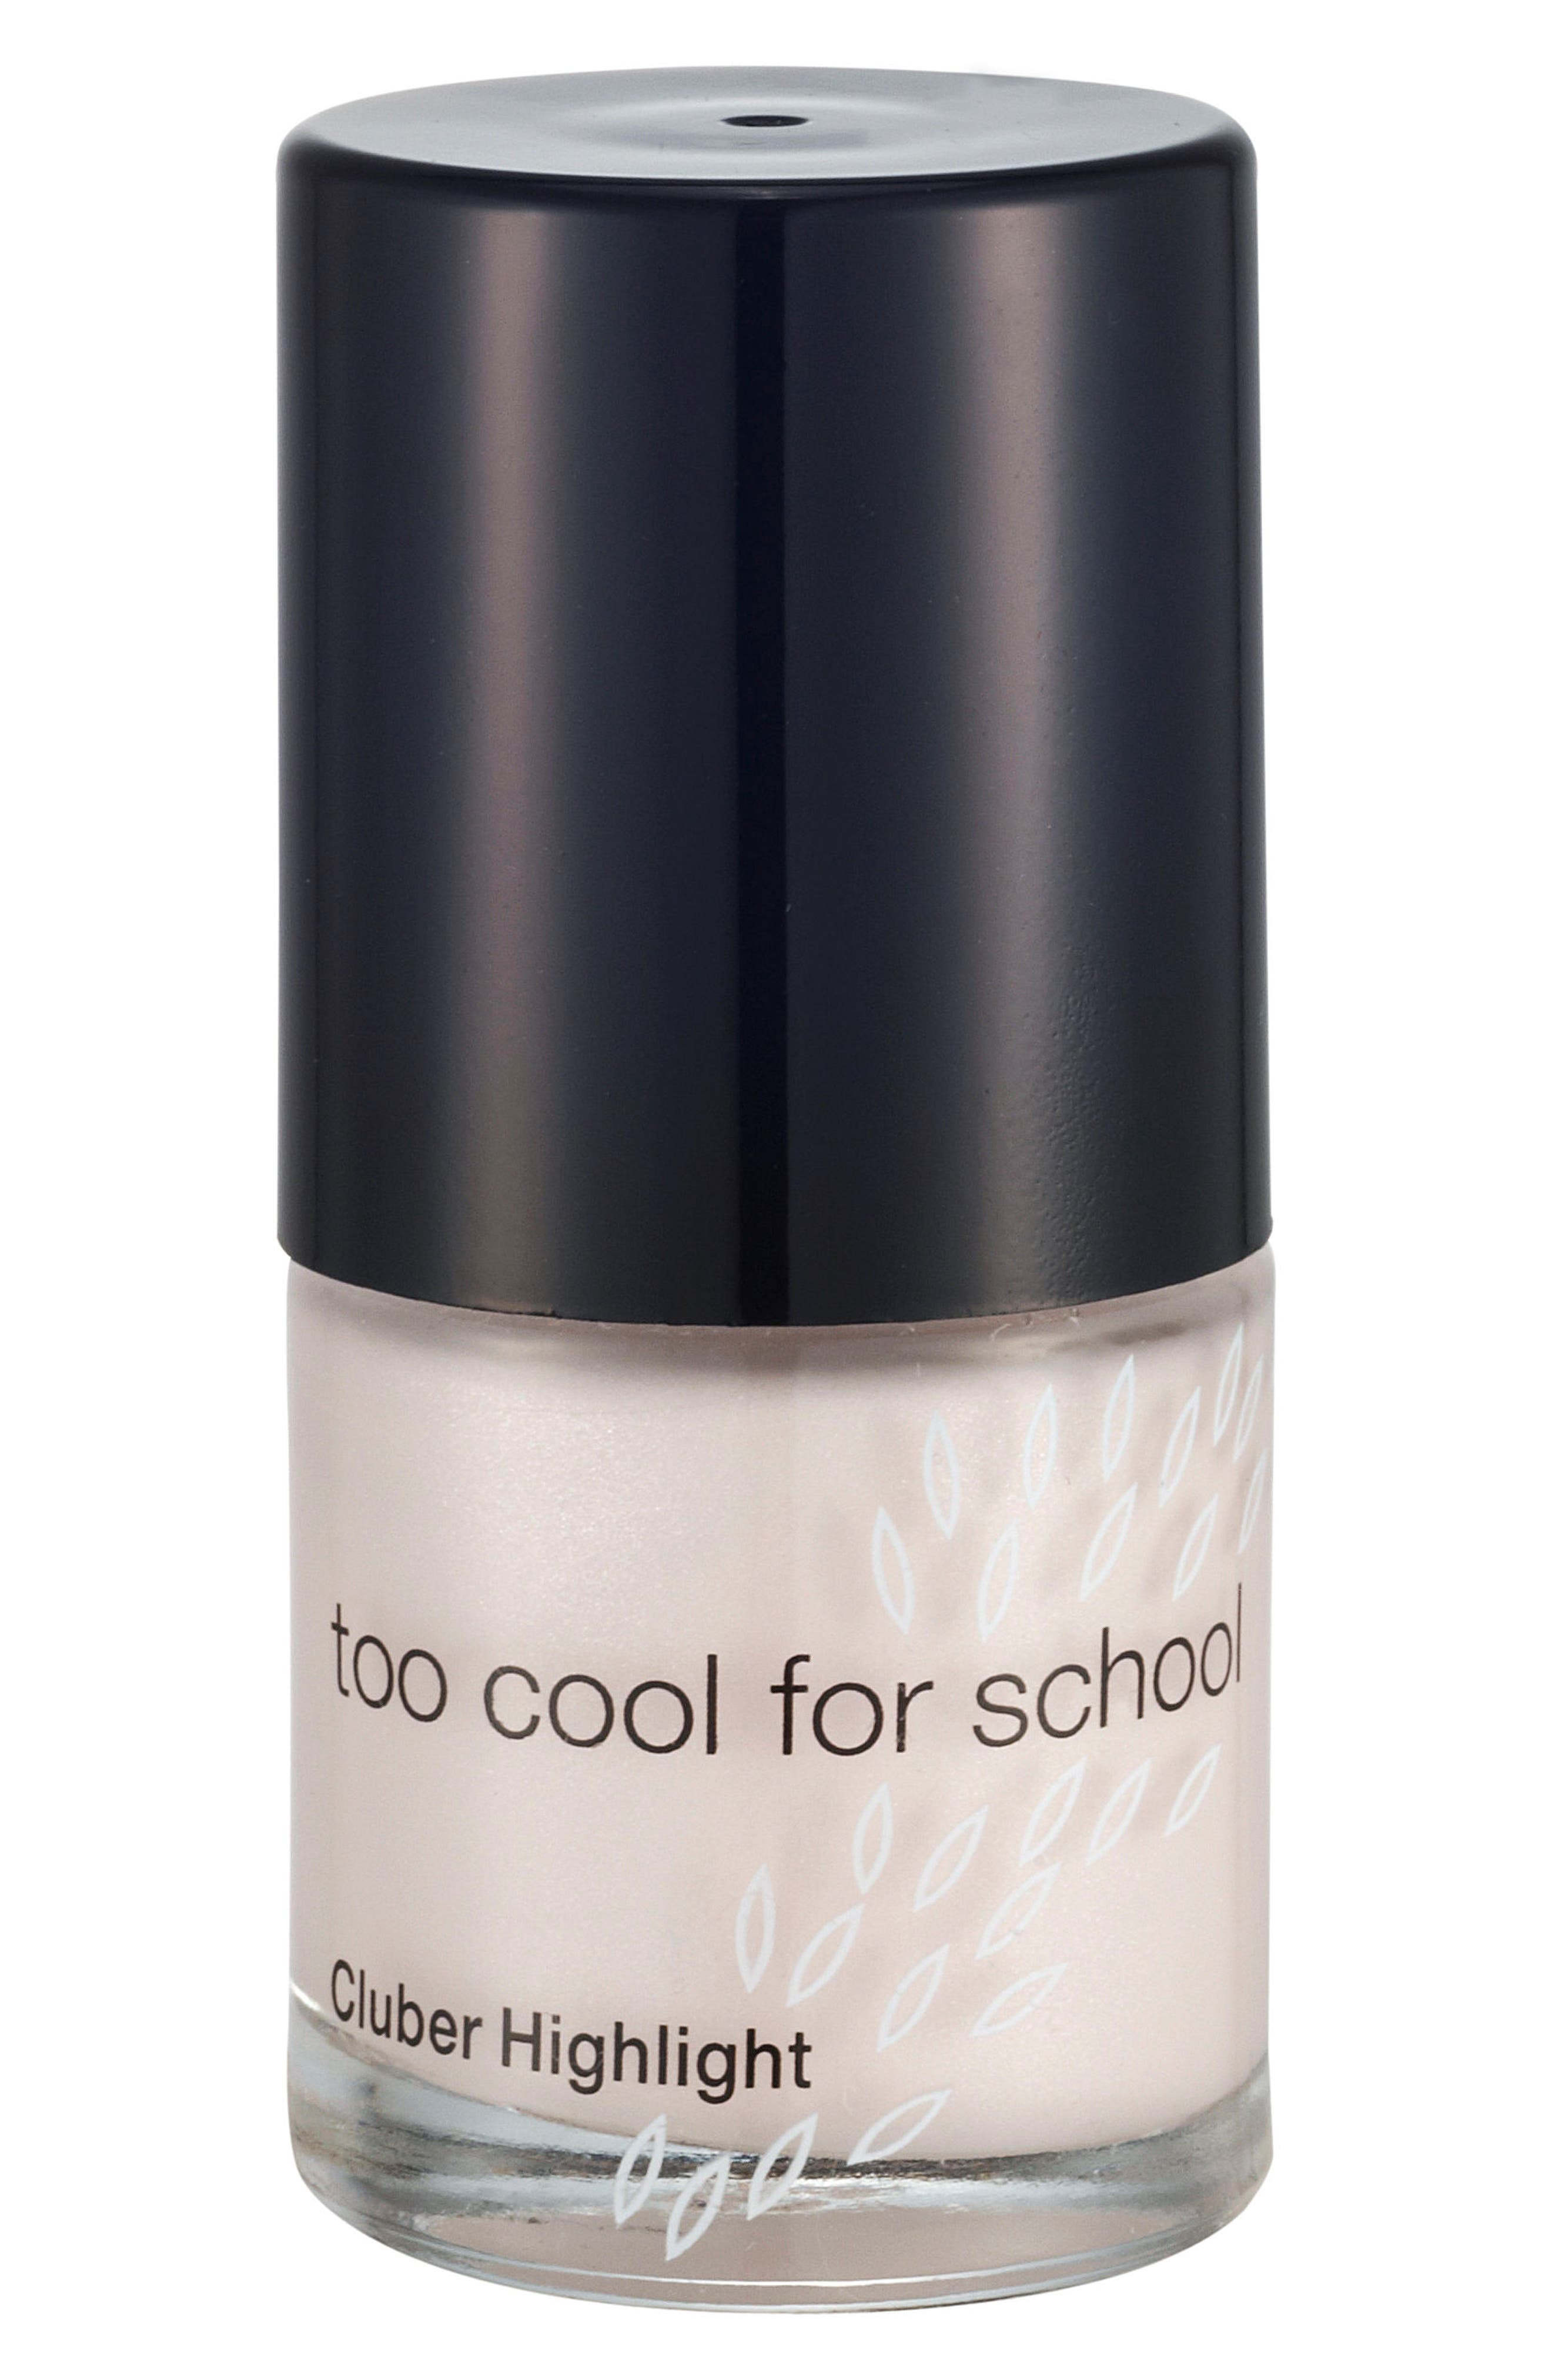 Alternate Image 1 Selected - Too Cool for School Cluber Highlighter